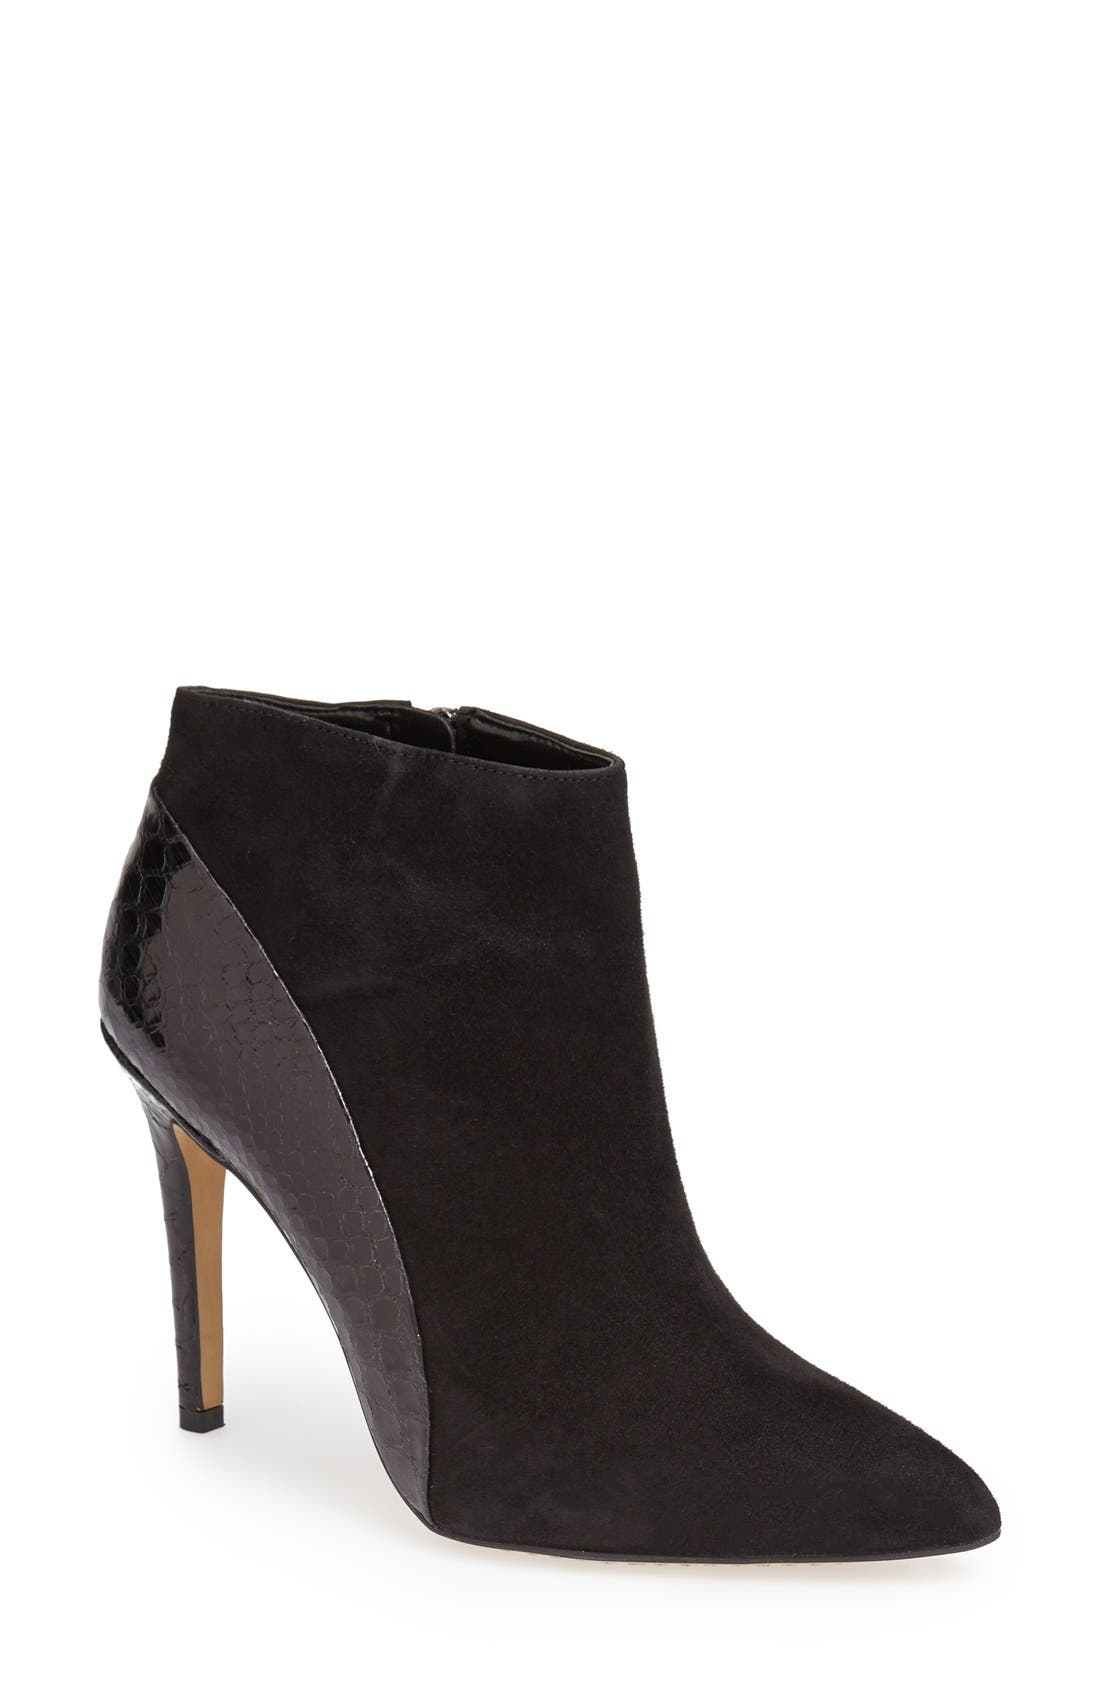 Main Image - Vince Camuto 'Kasi' Pointy Toe Bootie (Nordstrom Exclusive) (Women)